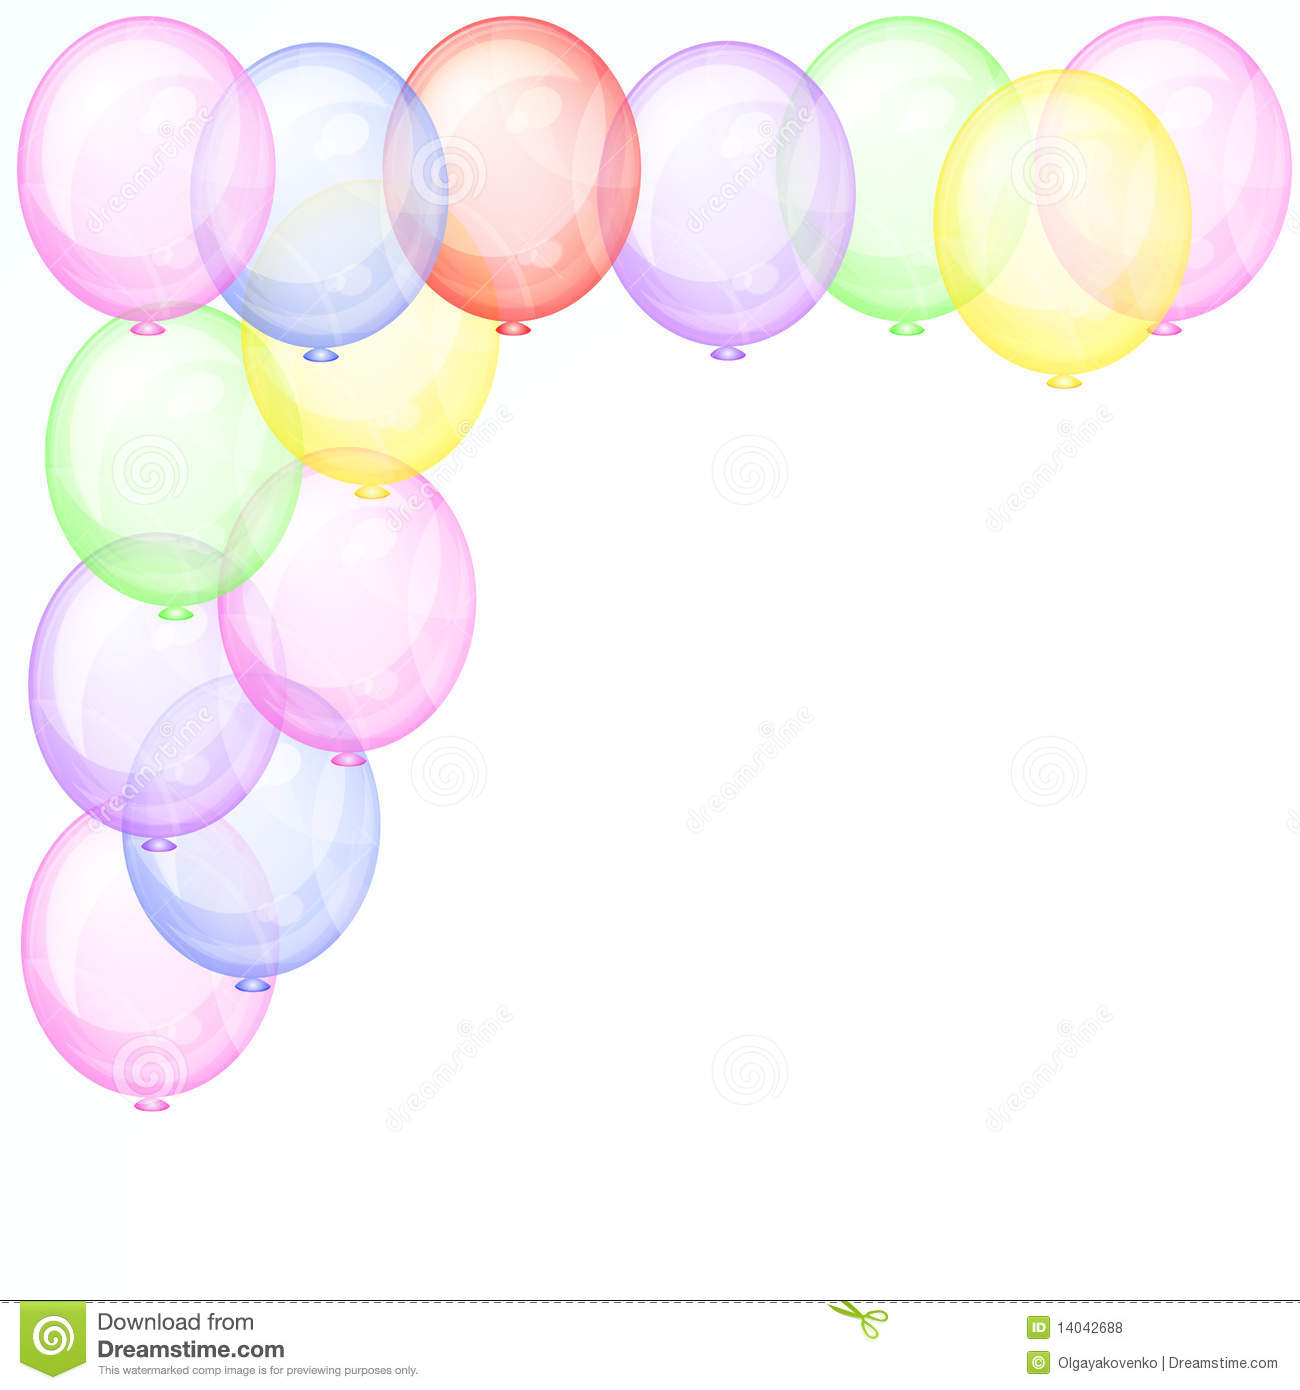 Background with transparent balloons - Illustration for your design.